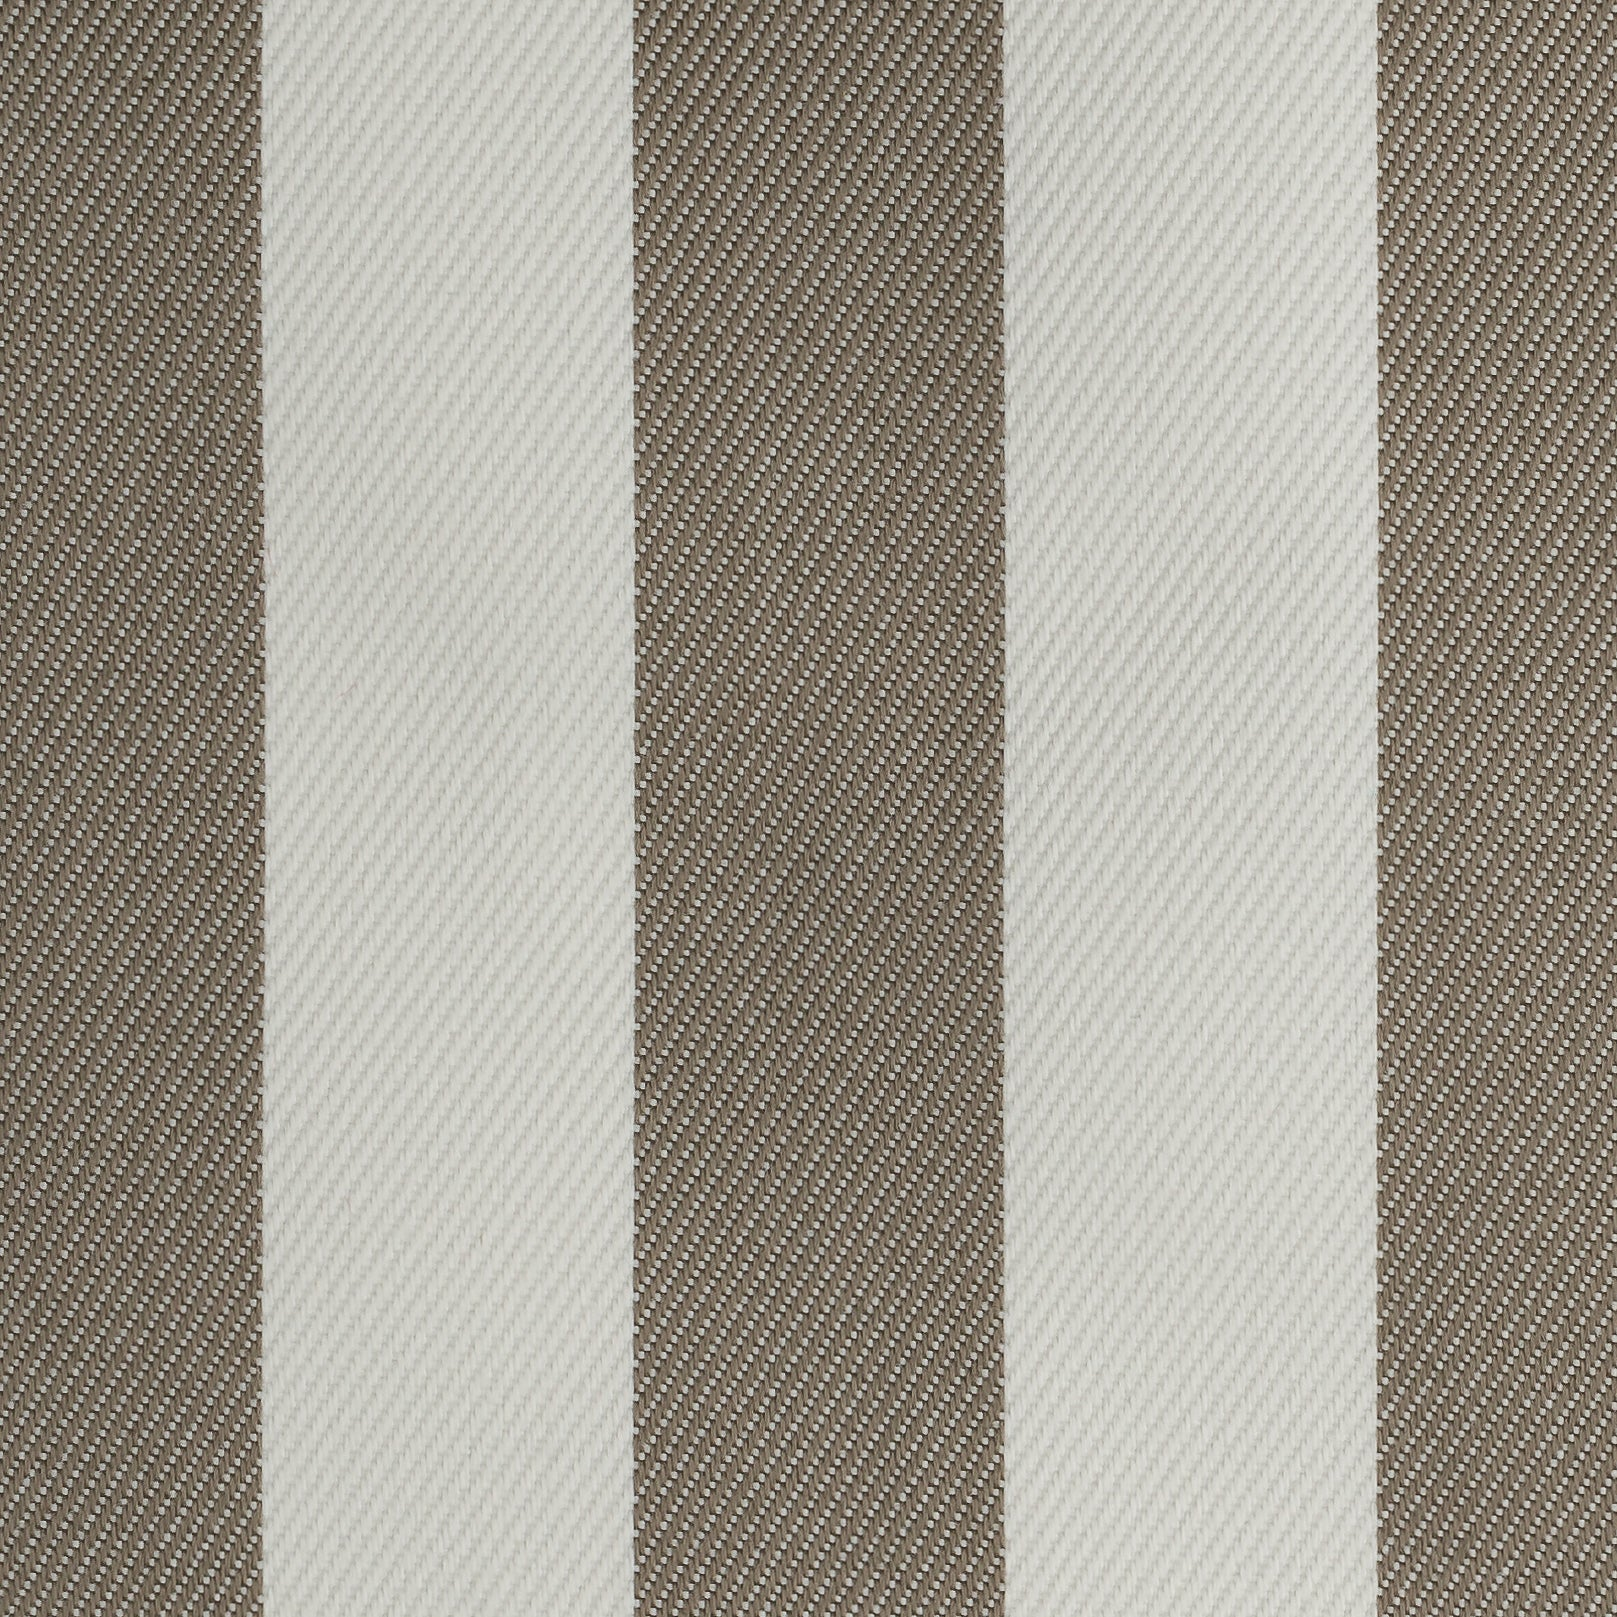 Sunset Stripes Khaki